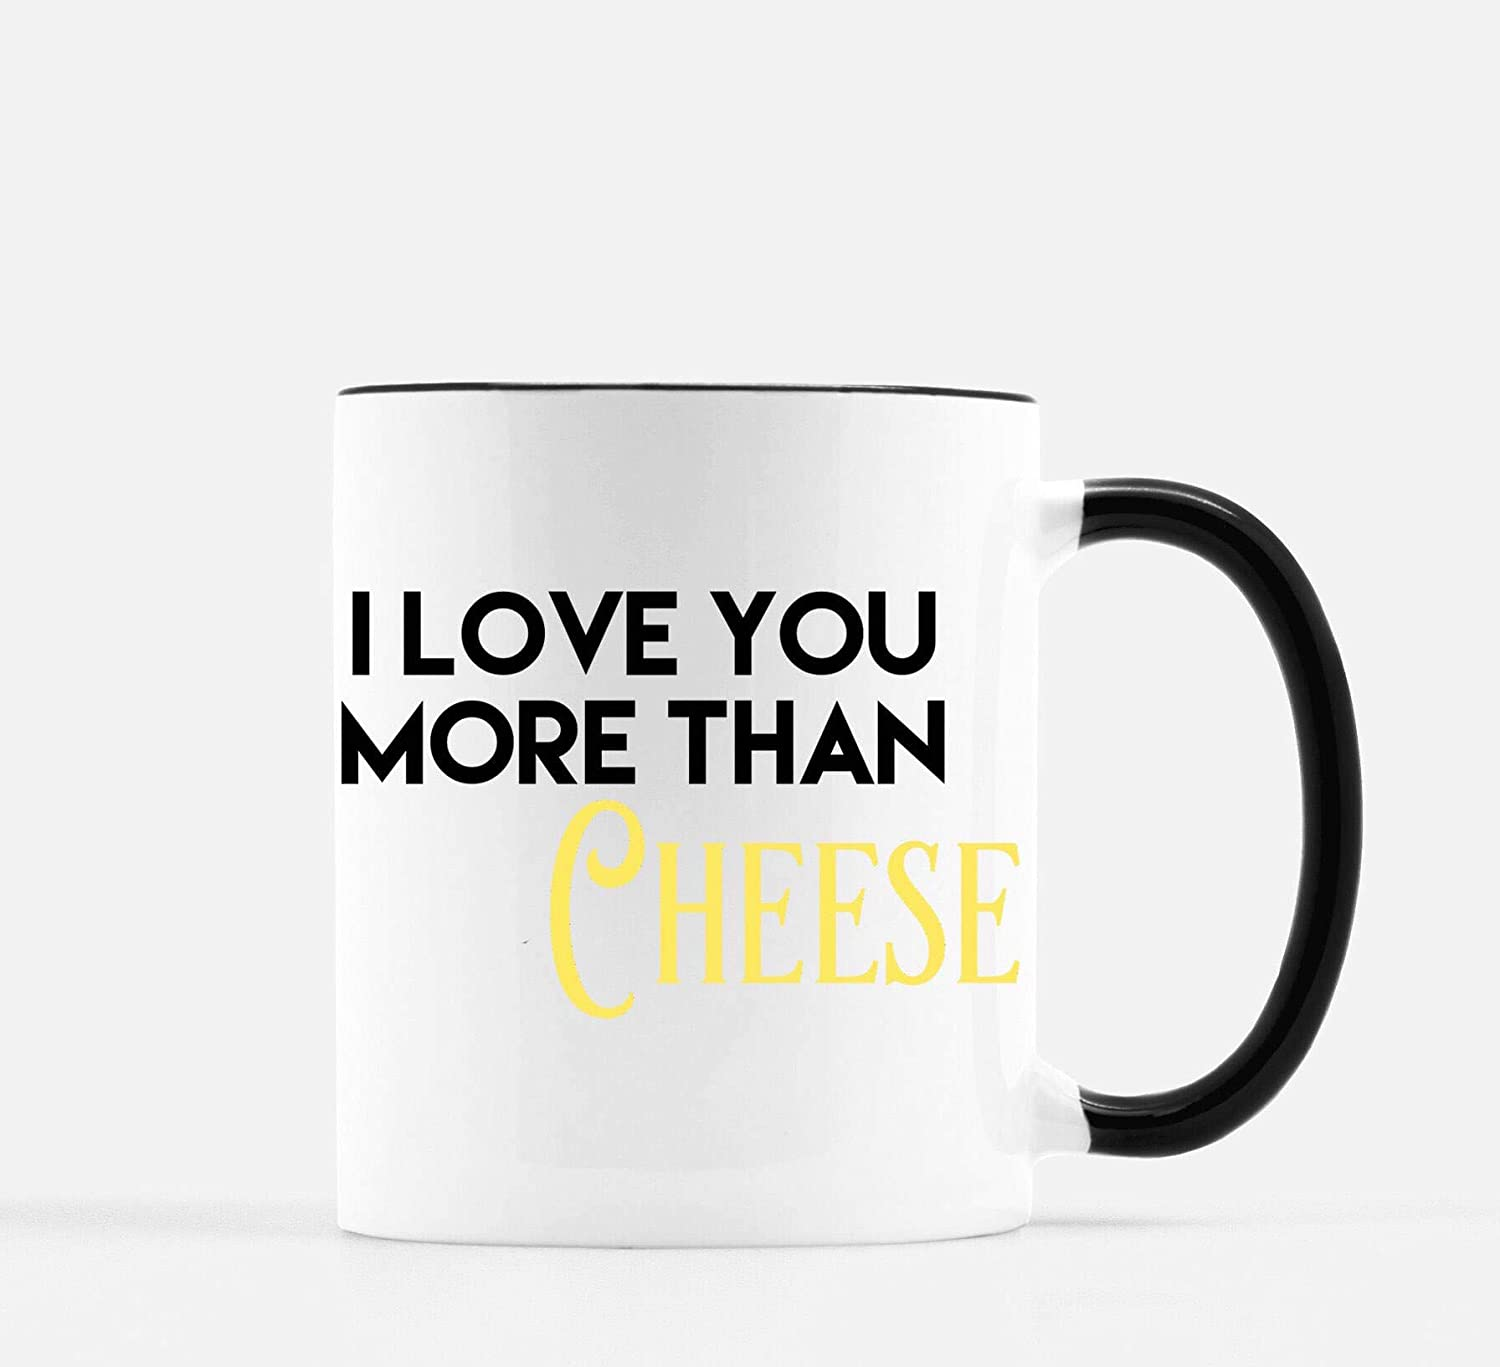 I Love You More Than Cheese | Valentine'S Day Mug | Gift For Him | Gift For Her | Housewarming | Foodie Gift | I Love You More Than Food Unique Gift Novelty Ceramic Coffee Mug Tea Cup - 11oz White